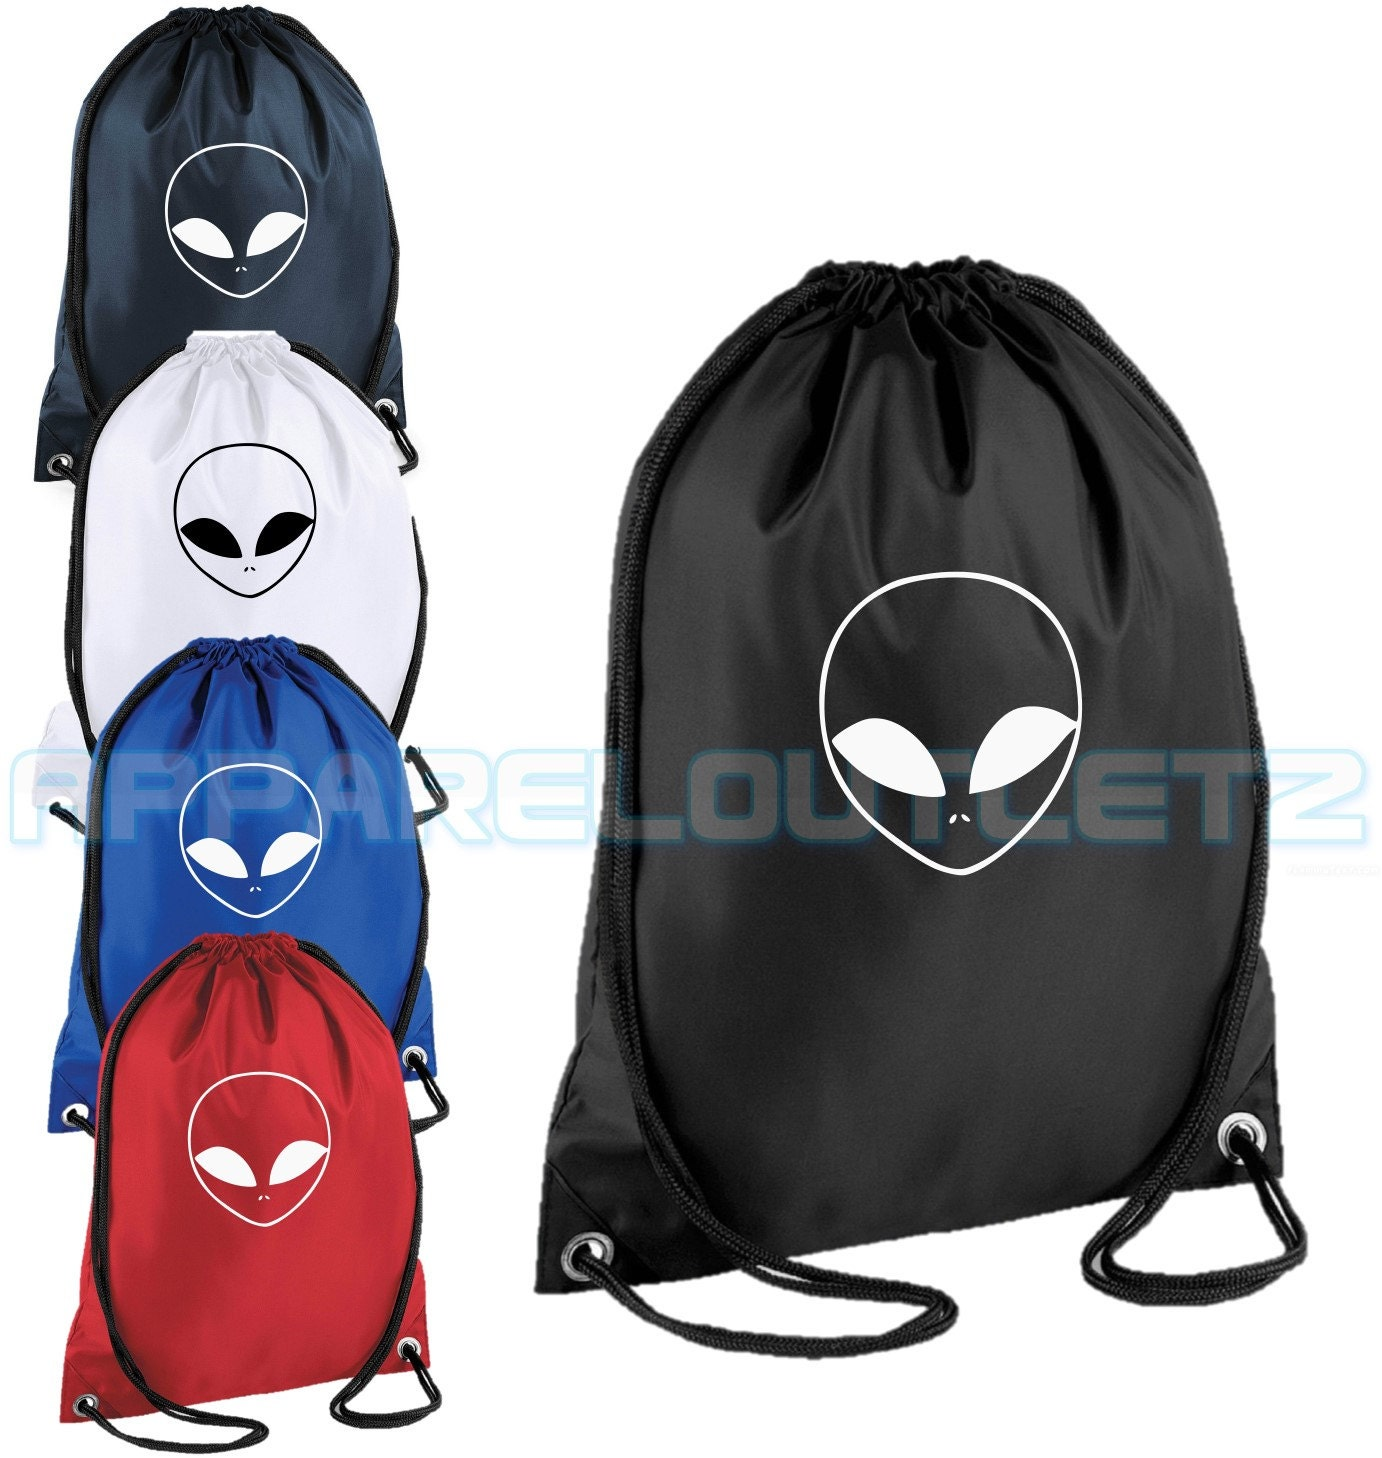 alien drawstring backpack bag rucksack gym sports travel ufo swag dope  hipster trend fashion new tumblr 3617ad3bf4327